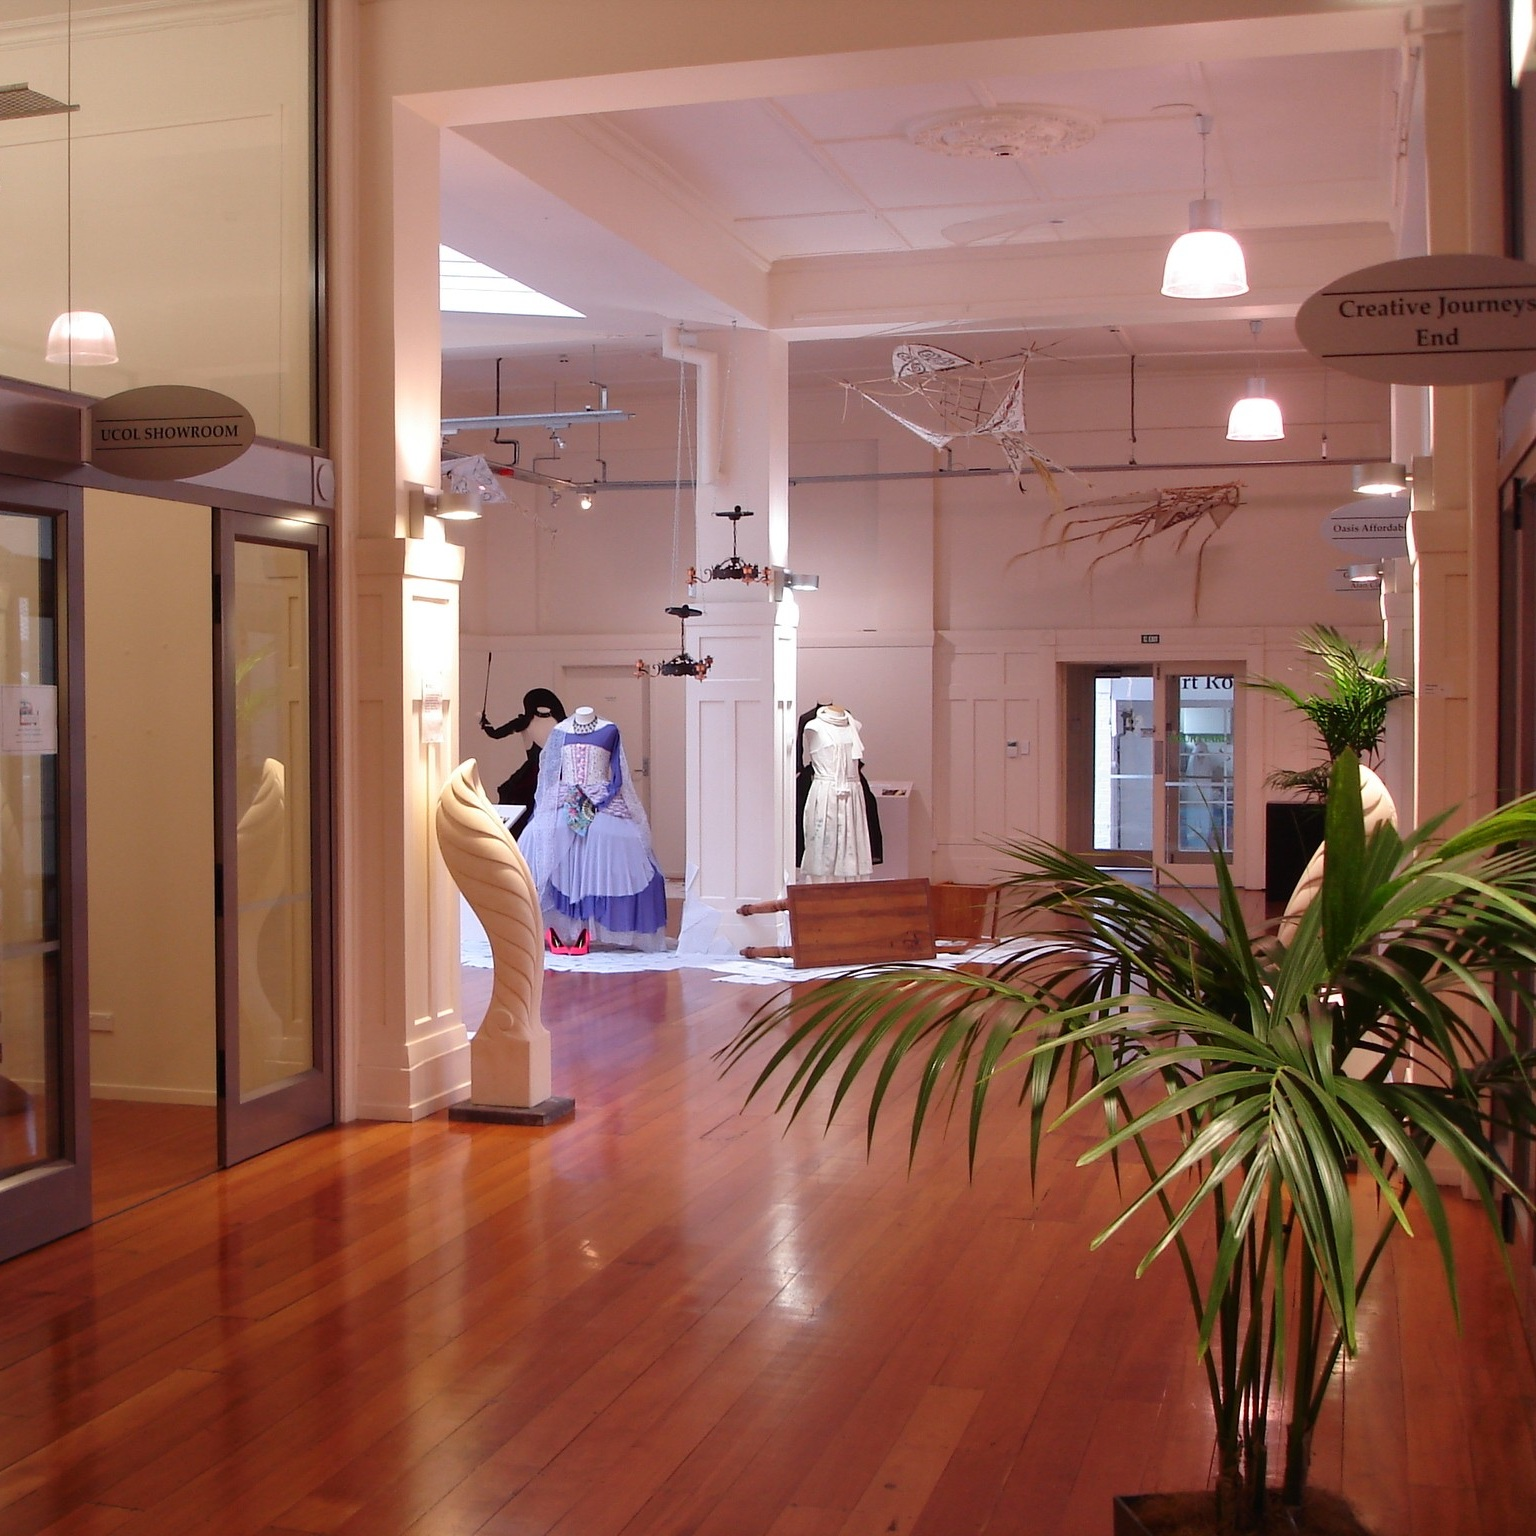 GALLERY 1   Suitable for: Exhibitions, performances, and events Capacity: 200 Hire rate: Quotation on request.  More info >